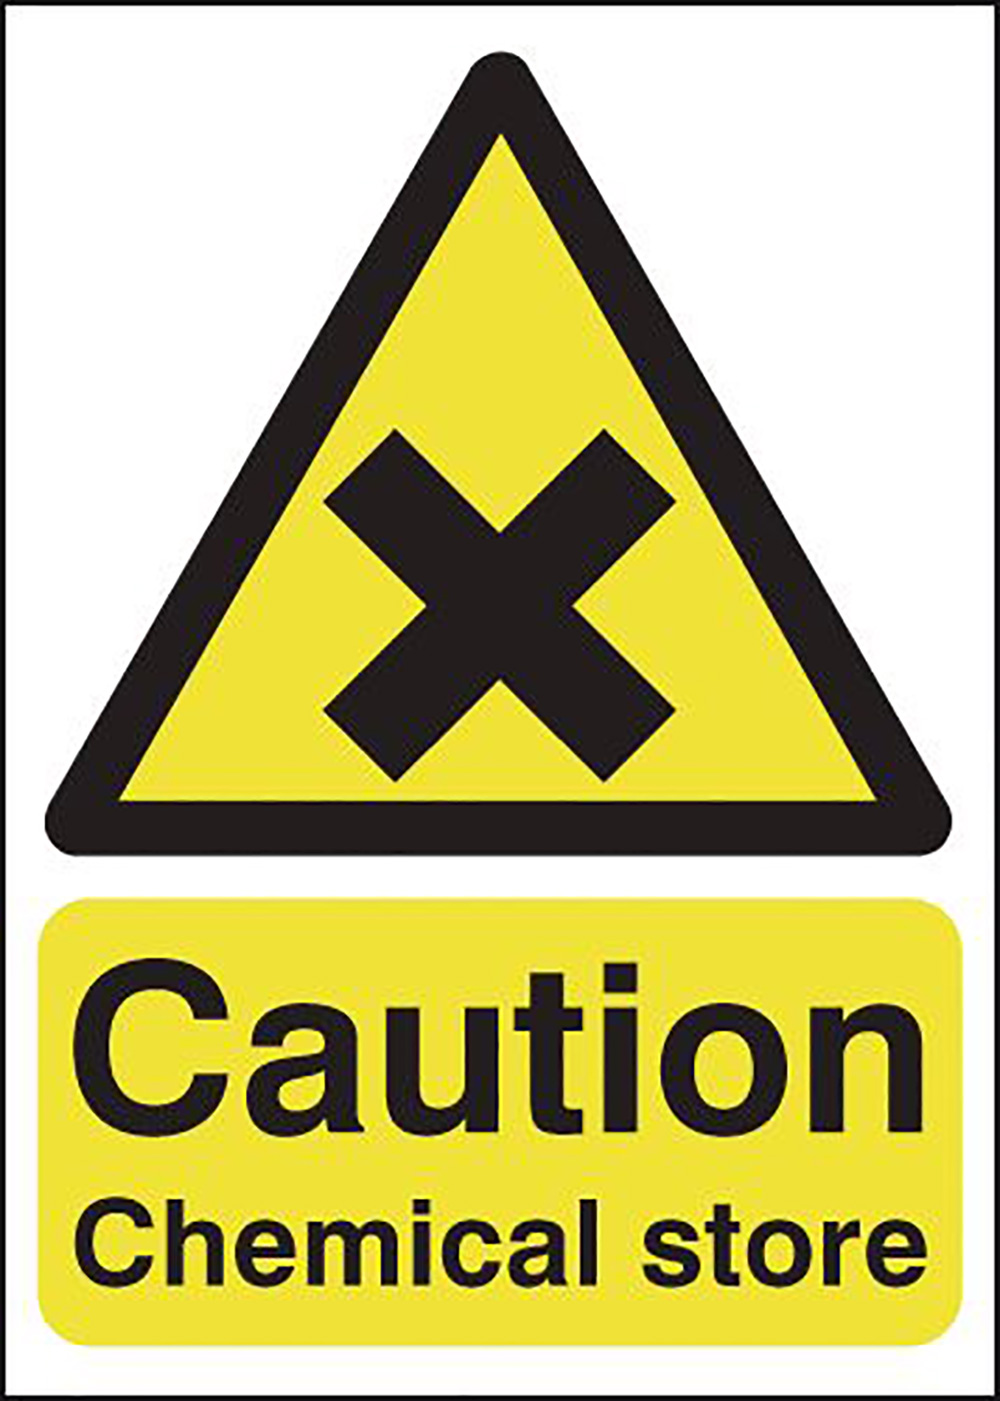 Caution Chemical Store 125x125mm Self Adhesive Vinyl Safety Sign